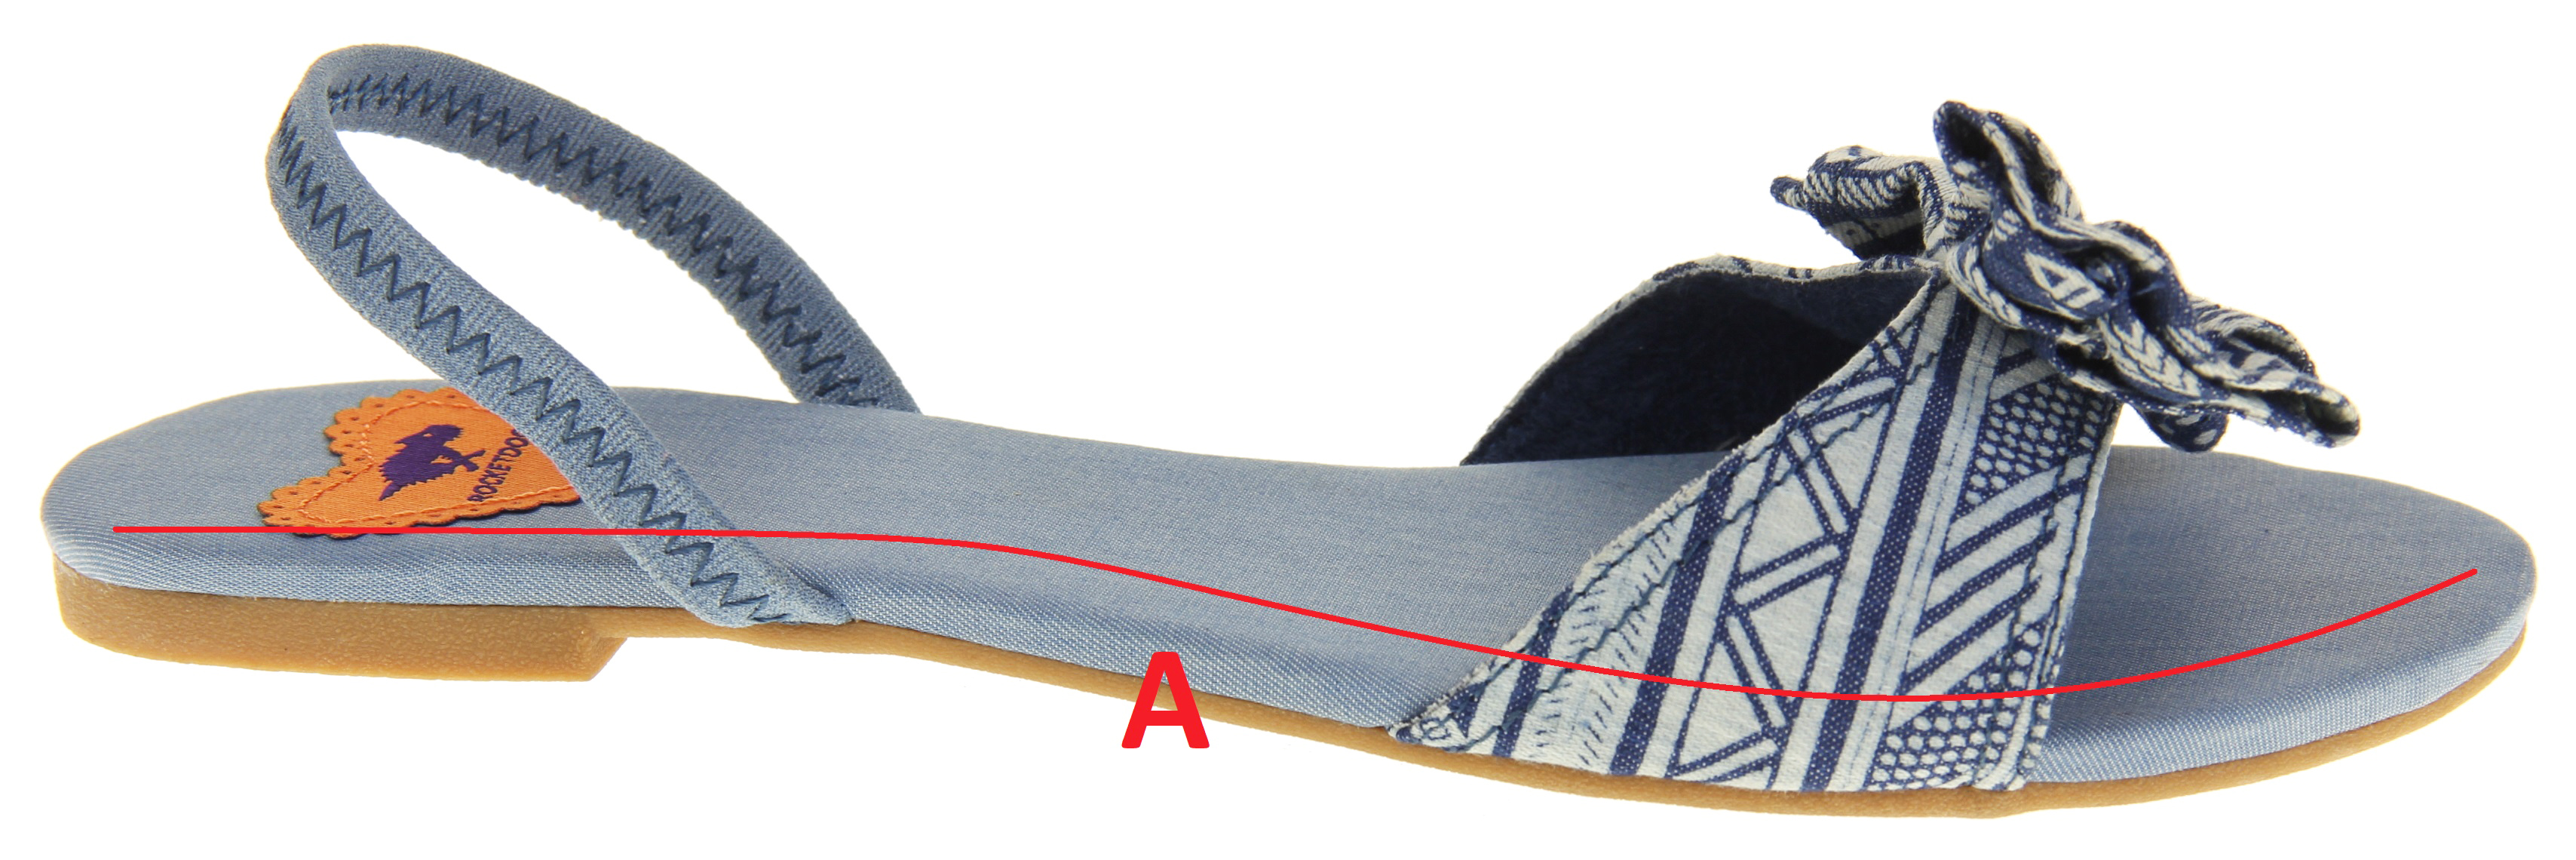 Shoe Diagram